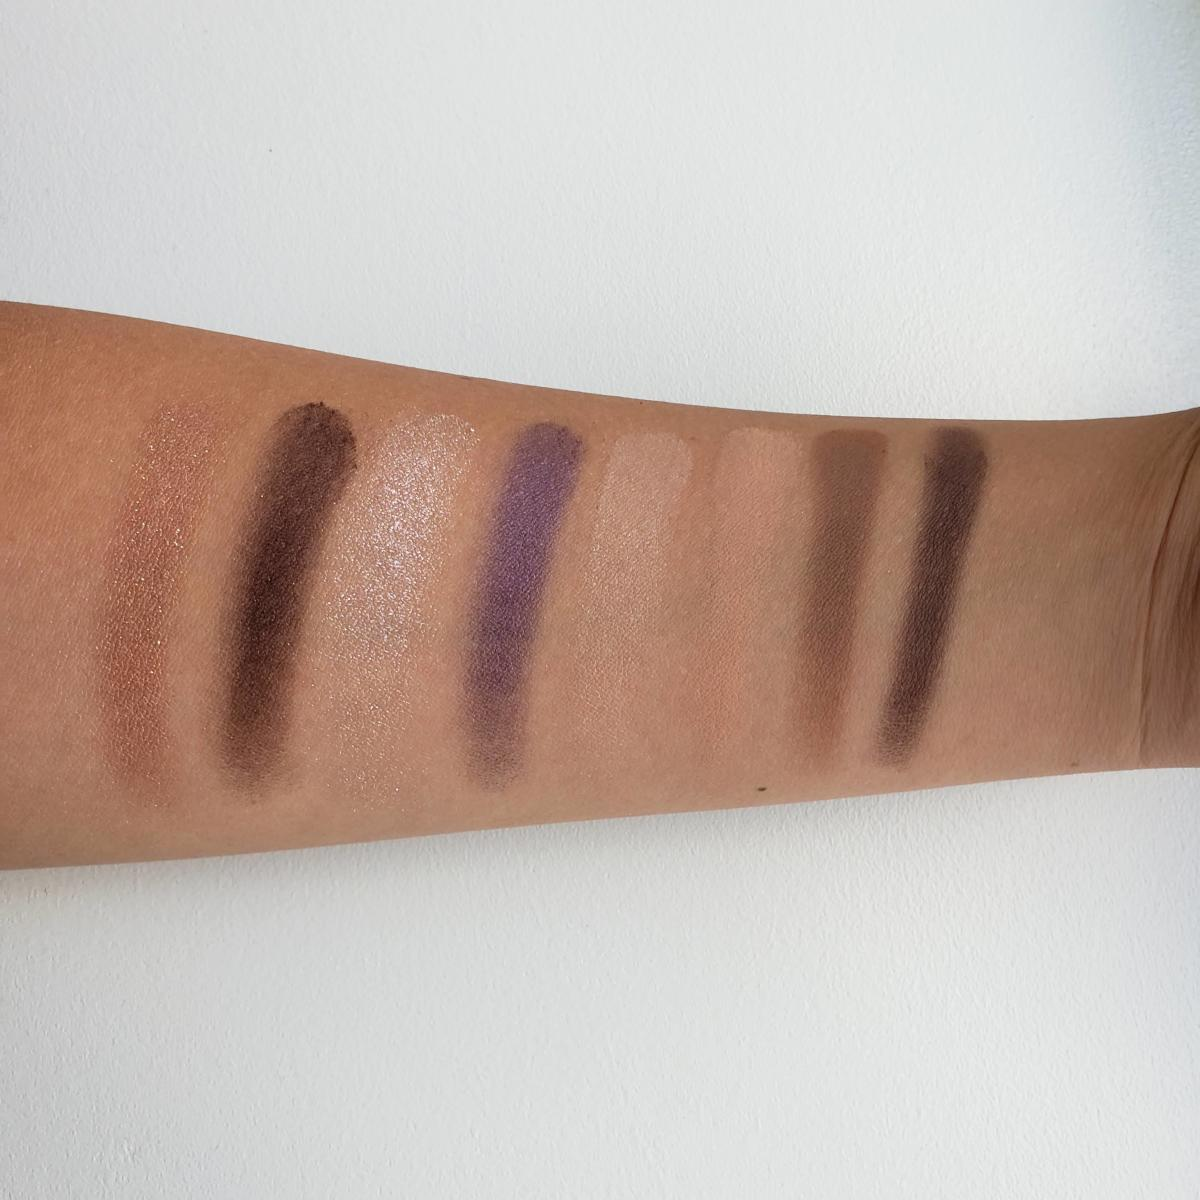 Urban Decay On The Run Mini Eyeshadow Palette In Shortcut And Bailout Review Swatches Bailout